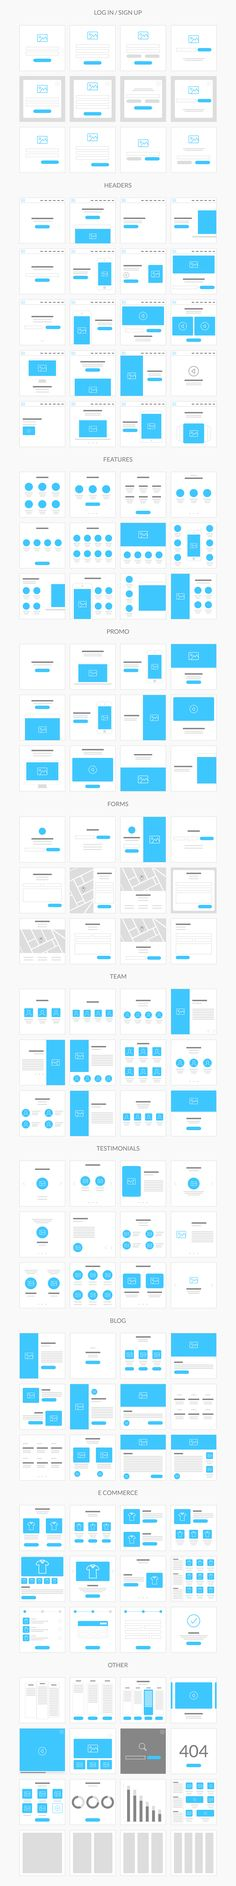 "Flowy is made with fast workflow in mind, so we created 236 ready to use templates, built on the 1170 grid and in Photoshop file format. You can create flowcharts for both mobile and web projects of any complexity and show them to your team or clients in Лучший хостинг для сайтов любого назначения. Сайты просто летают! <a href=""http://timeweb.com/ru/?i=14467"" rel="""">Надежный хостинг для ваших сайтов</a>"